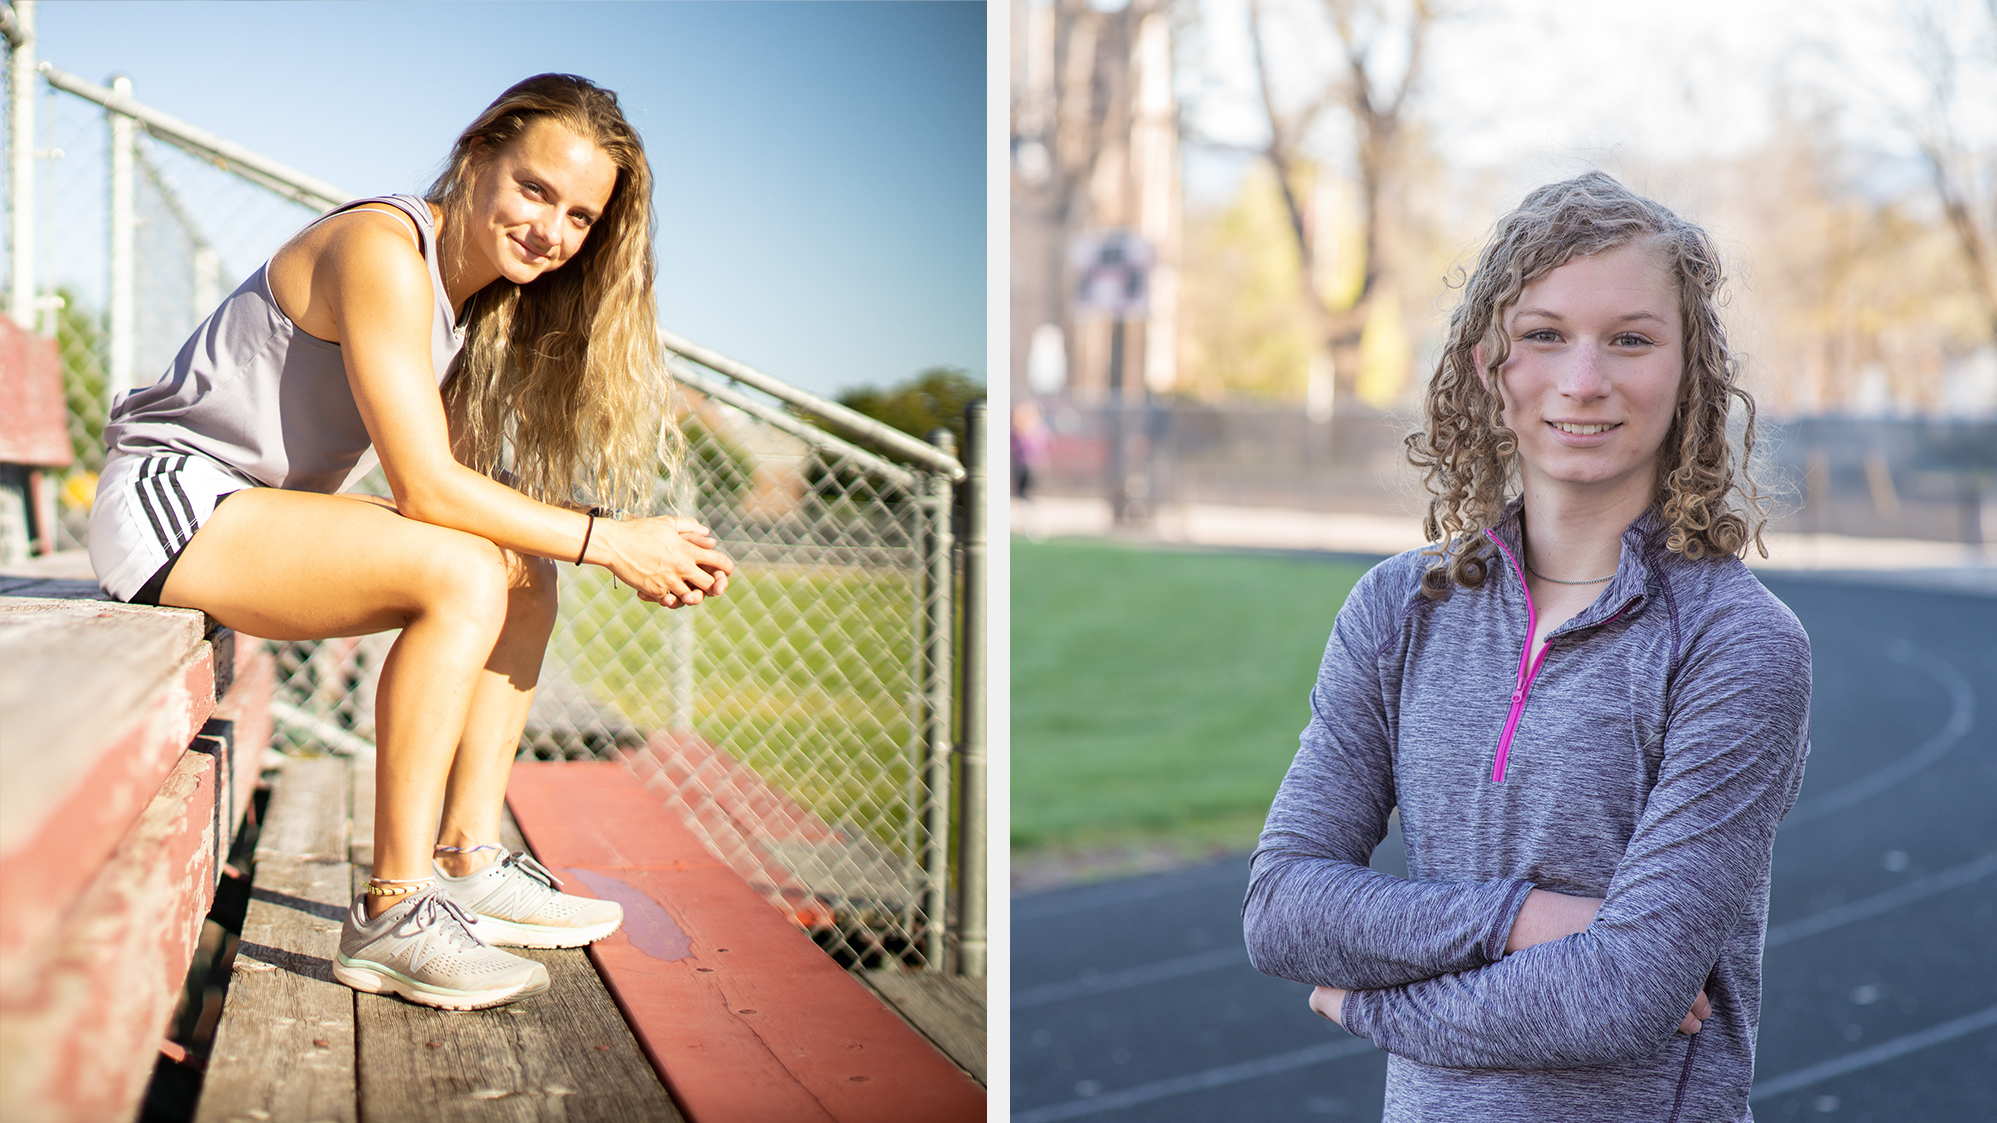 Madison Kenyon (left), who is cisgender, runs track and cross-country at Idaho State University. She supports Idaho's transgender sports ban. Lindsay Hecox (right) is transgender and hopes to make the women's track and cross-country teams at Boise State University.